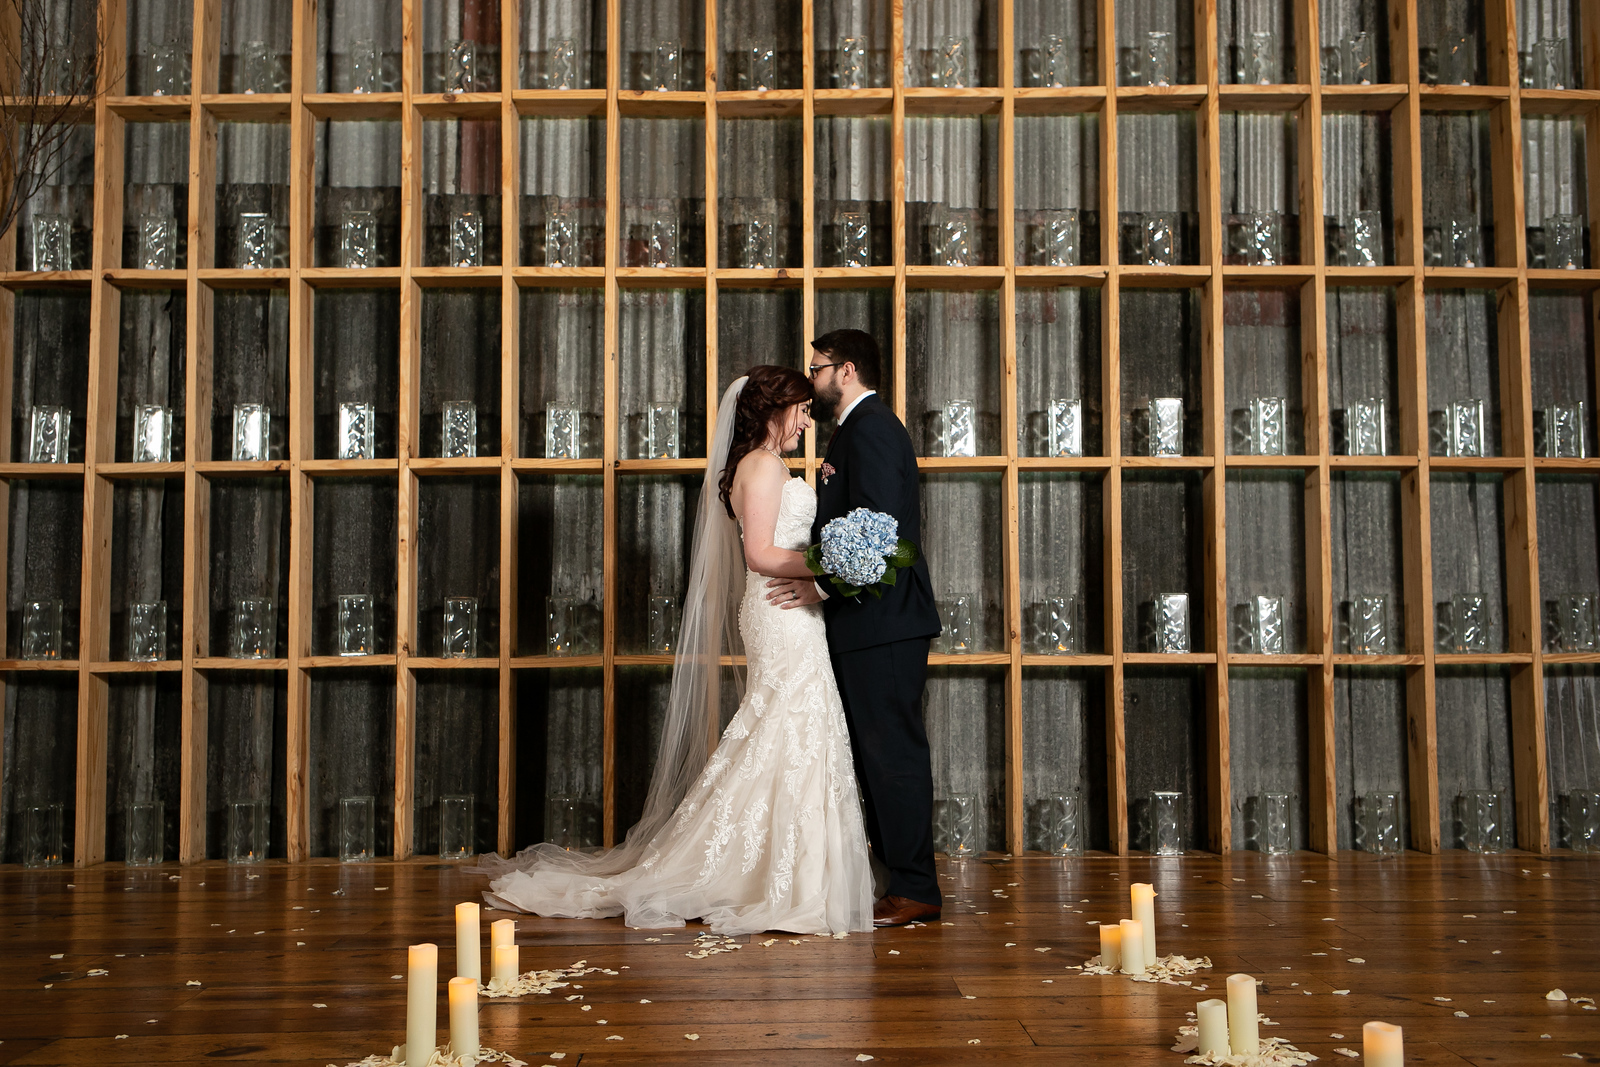 groom kissing bride on the head standing next to a giant bookcase wall filled with glass jars surrounded by flower petals and candles